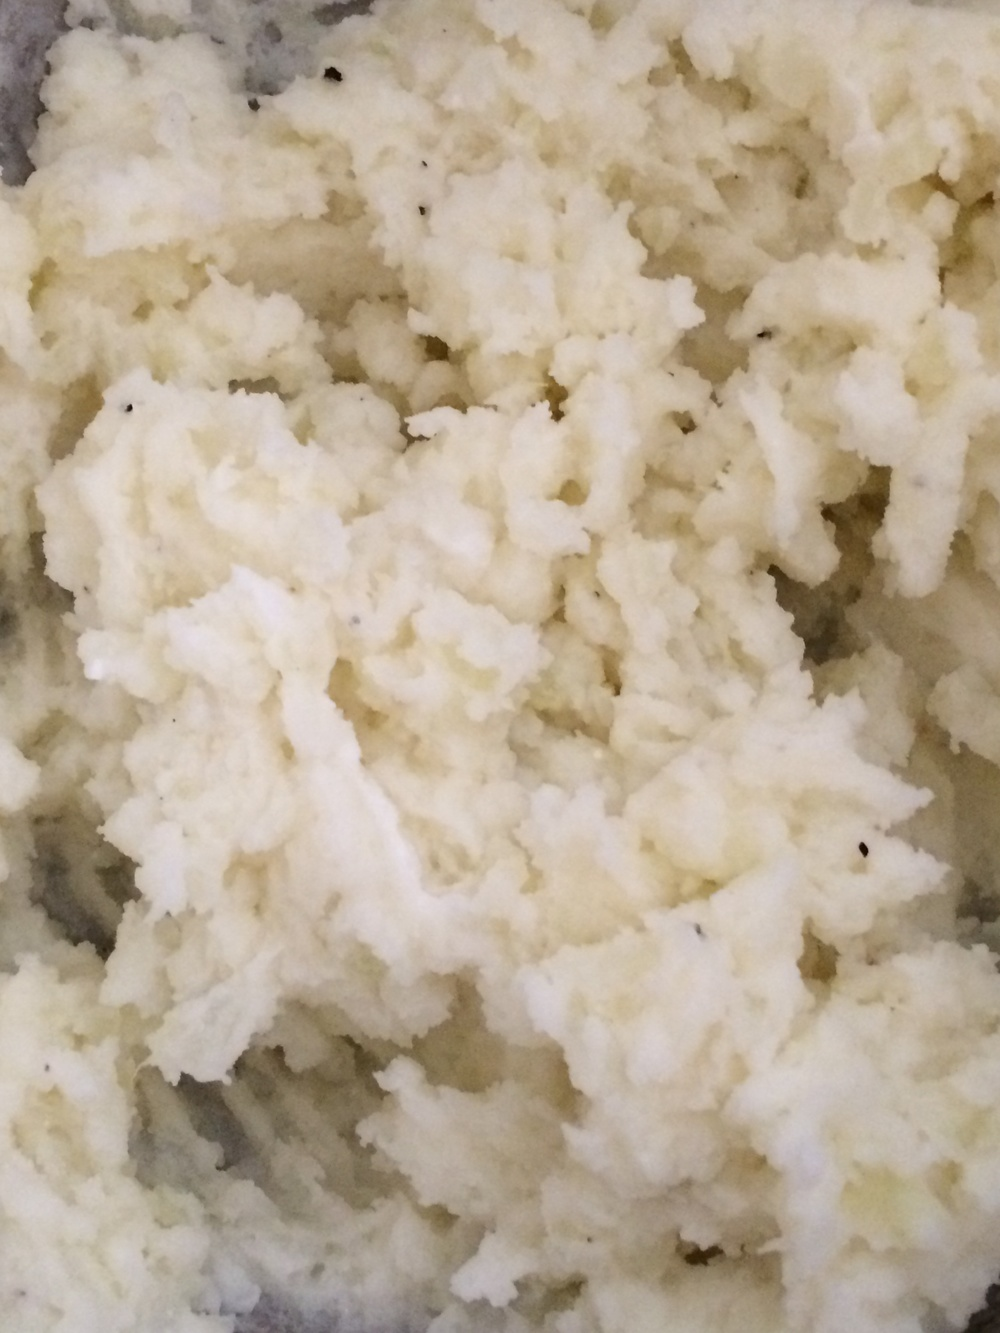 Mashed red potato with goat cheese.